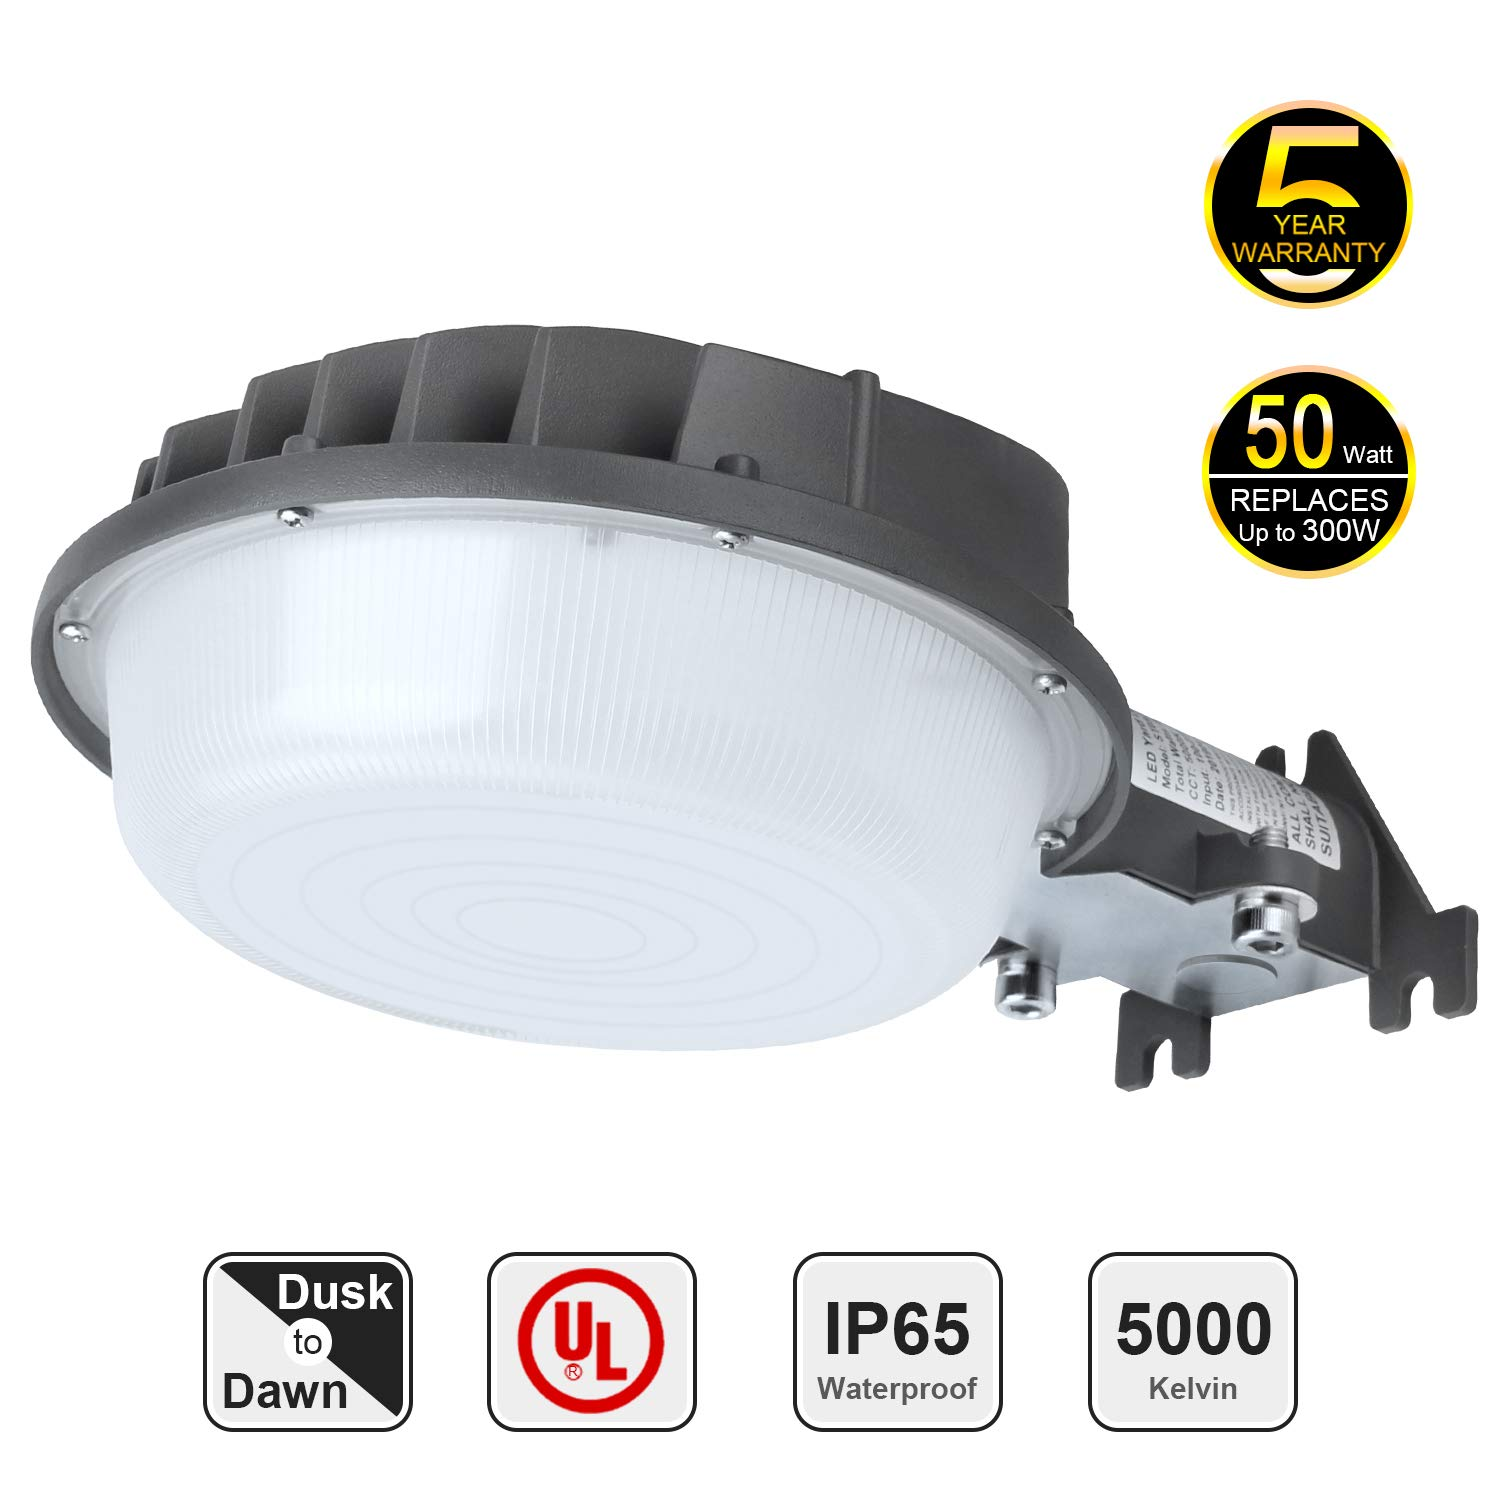 5000K Daylight 7140Lm LED Area Light 80W Dusk to Dawn Yard Light Outdoor Security Area Light Perfect Barn Light with Photocell 400W Mercury Vapor//160W MH Equiv.